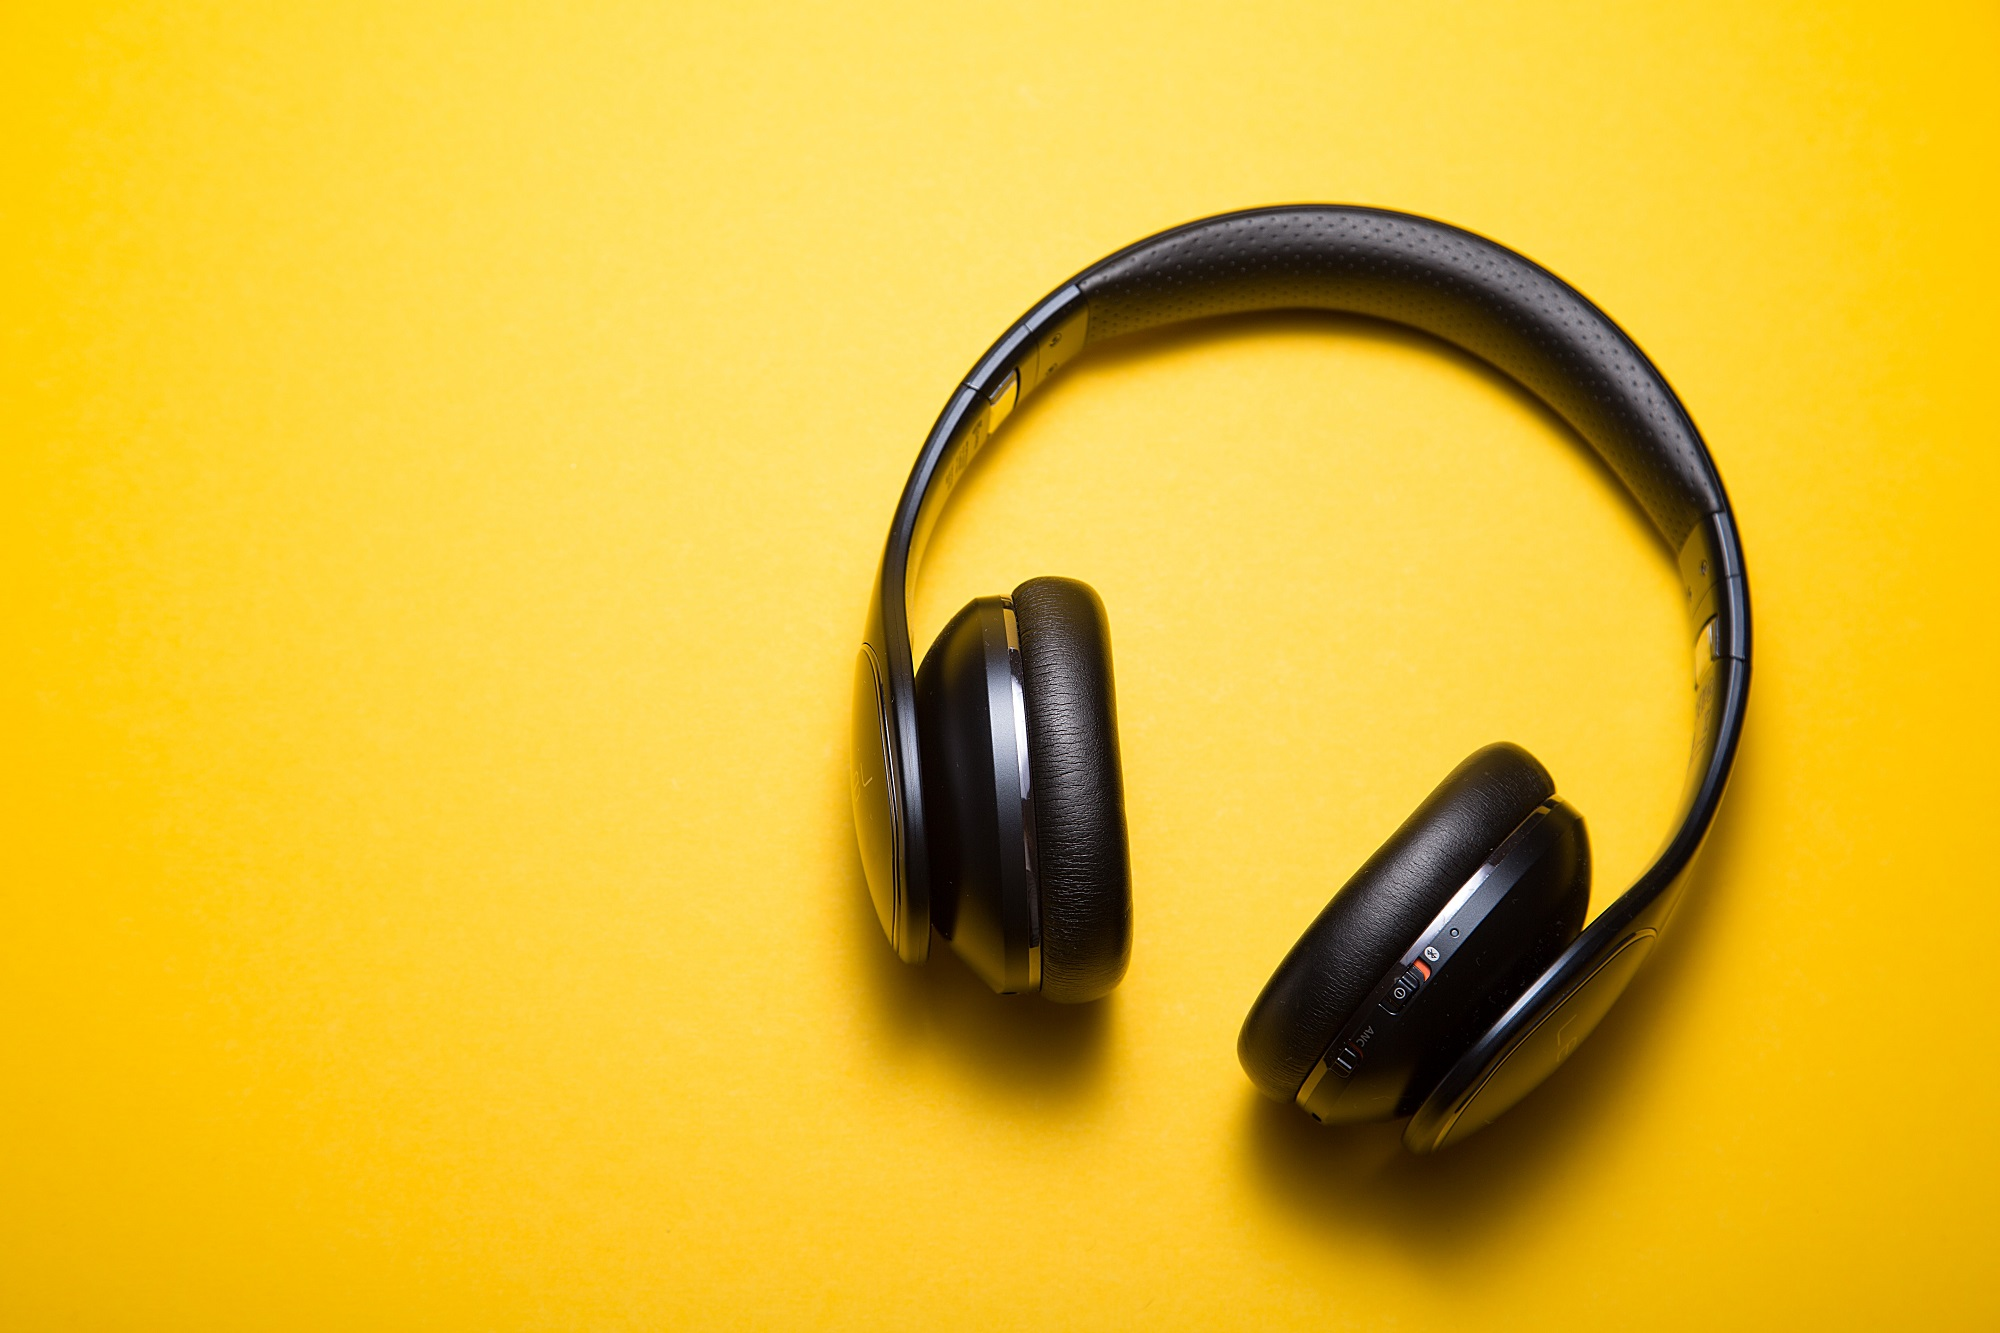 Stock images of black headphones on a yellow background